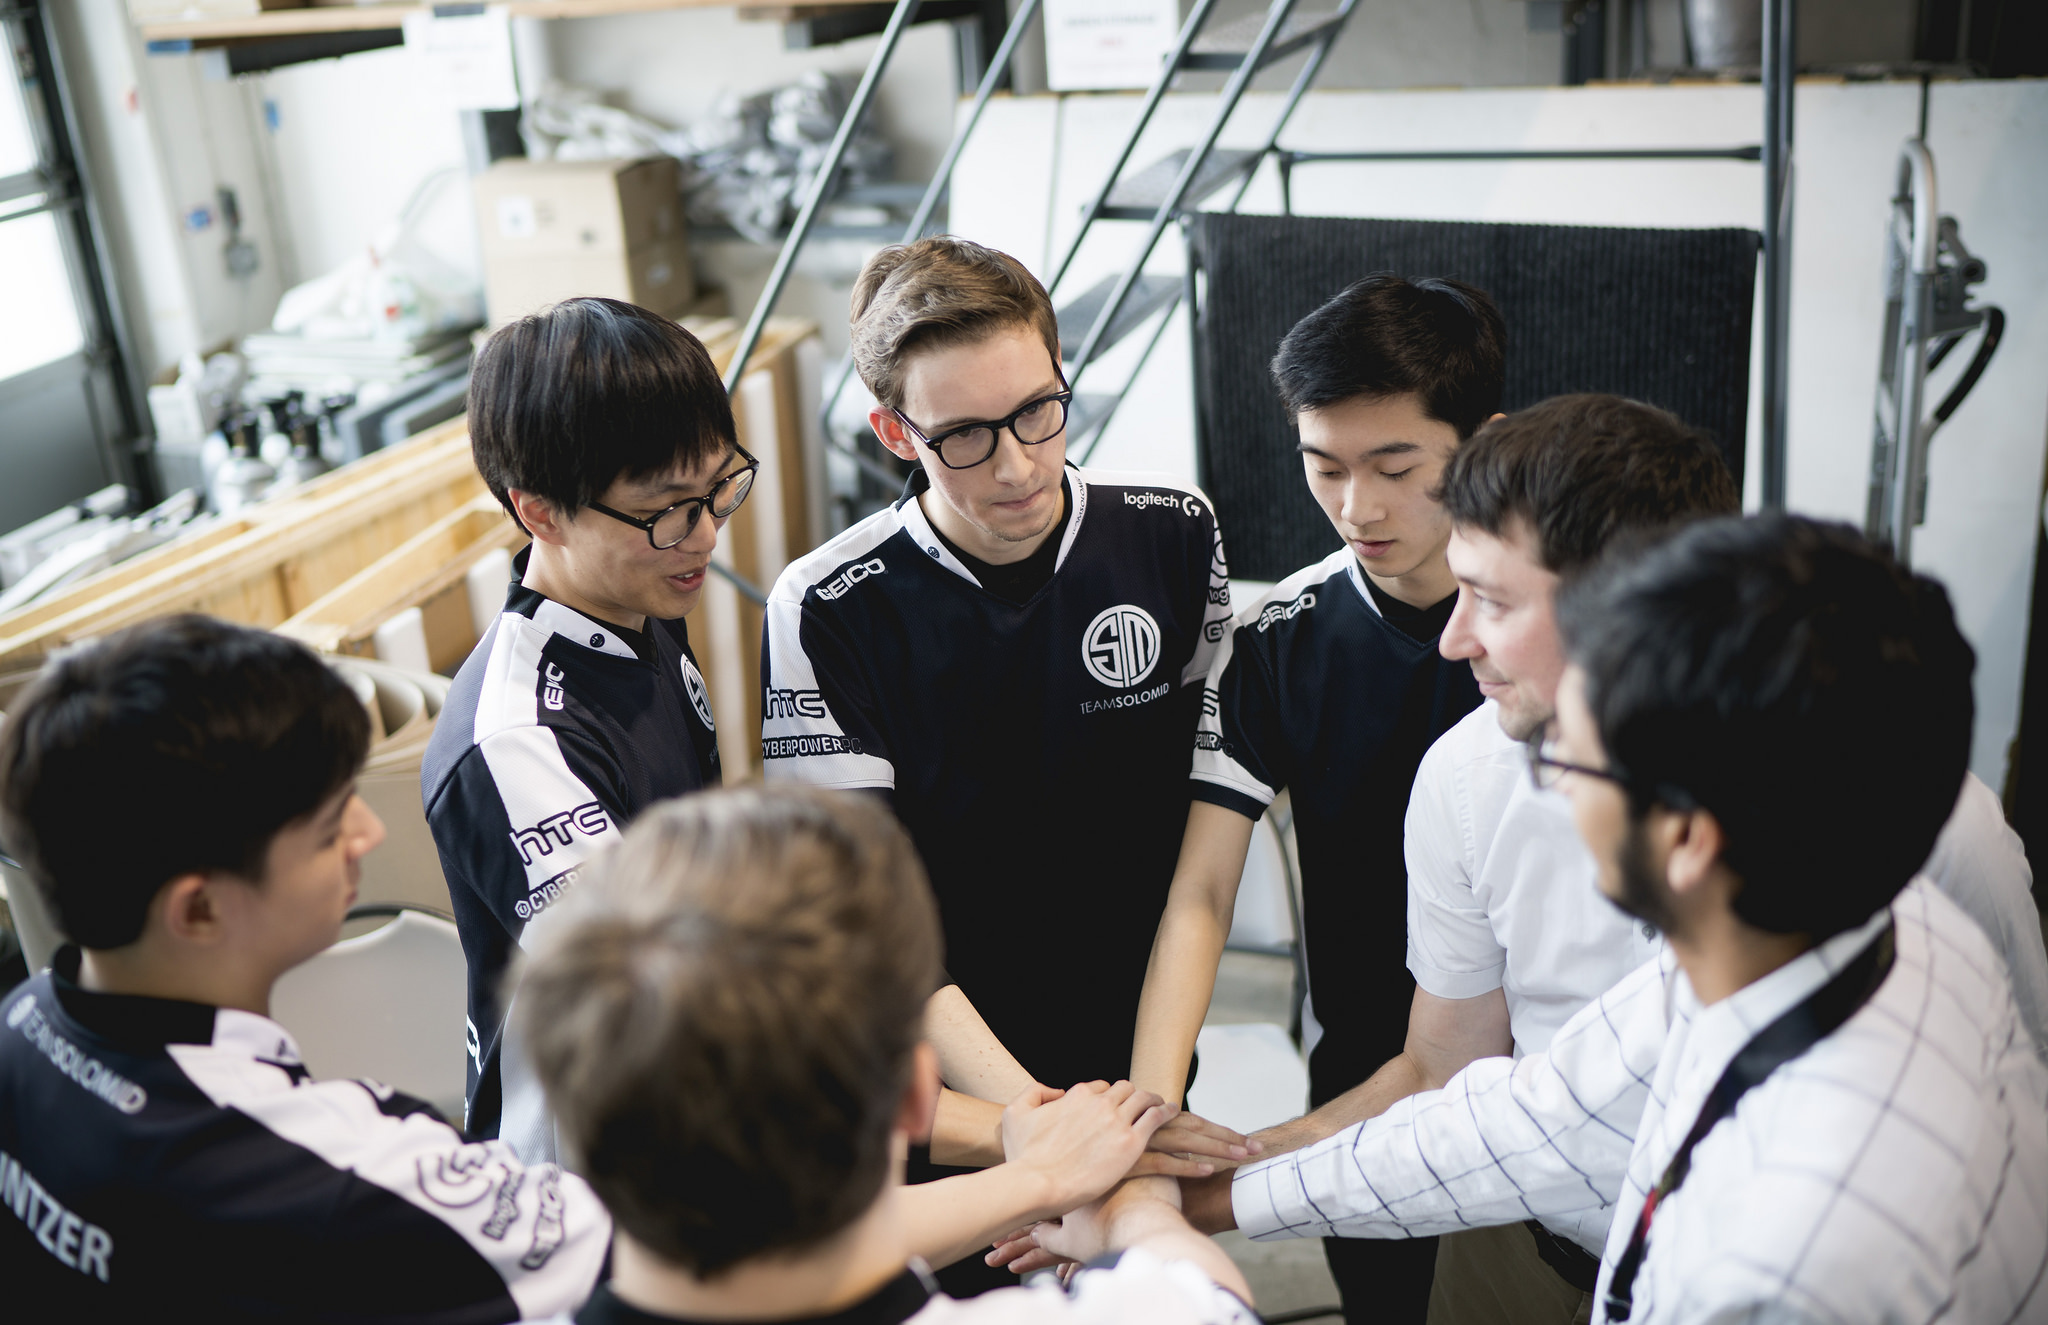 A photo of Team SoloMid (TSM) standing in a circle and putting their hands together in the middle.